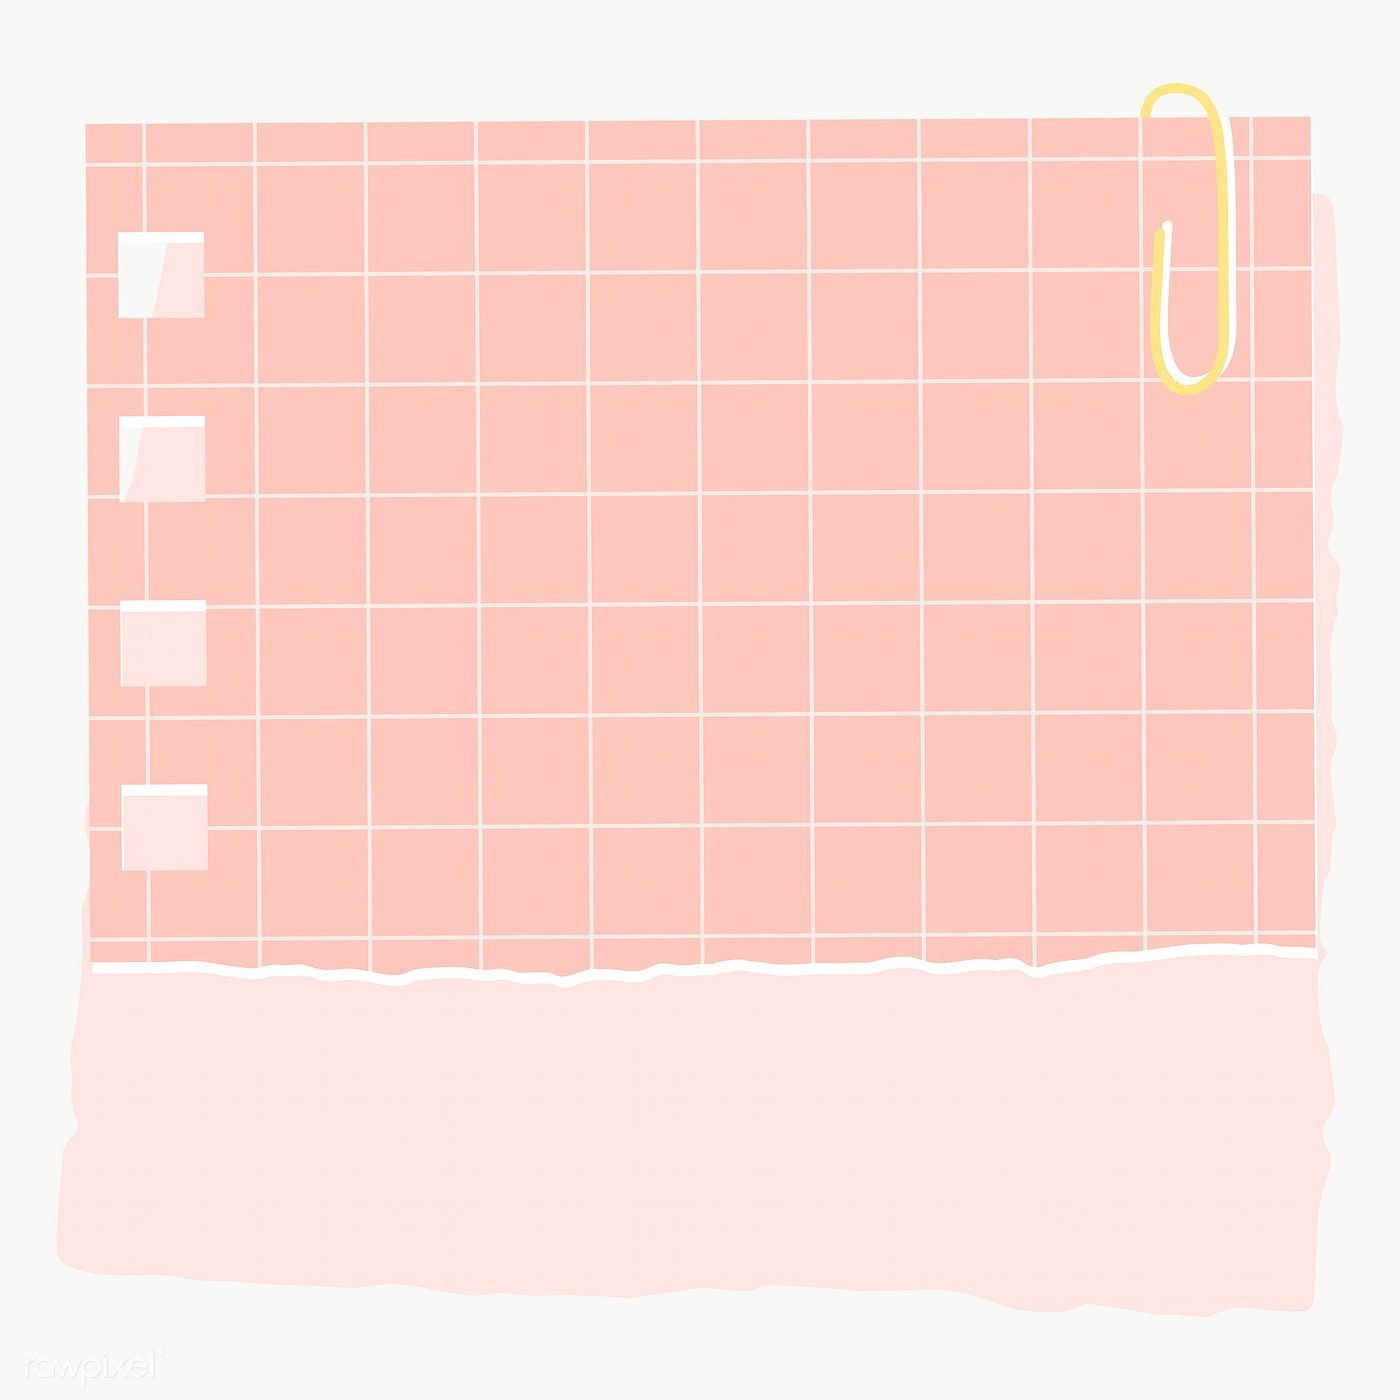 Download Premium Png Of Pink Square Paper Note Social Ads Template In 2020 Note Paper Square Paper Instagram Frame Template